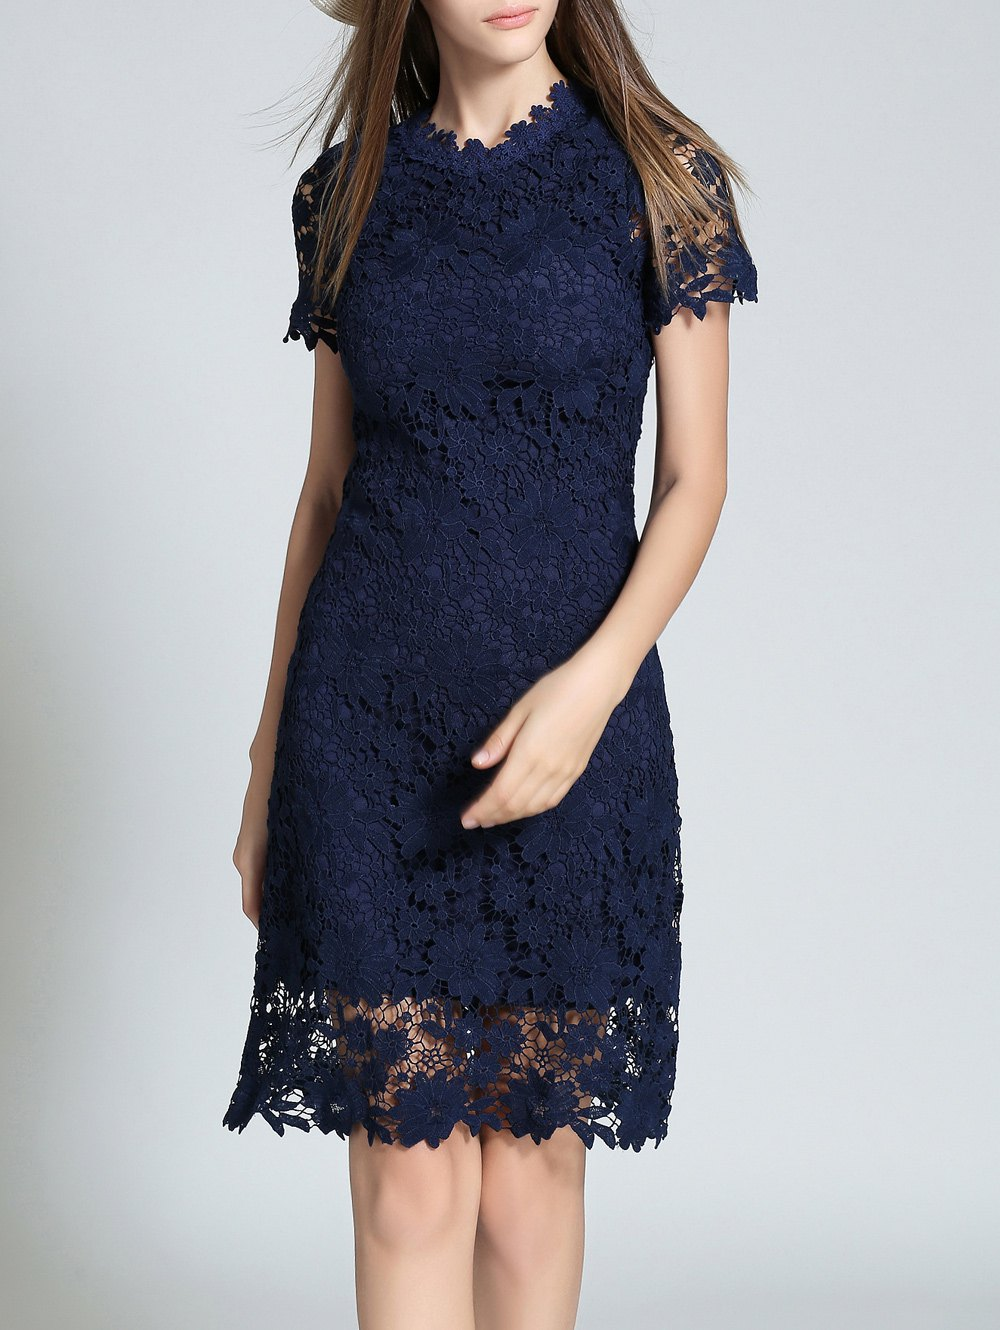 Short Sleeve Sheath Lace Dress